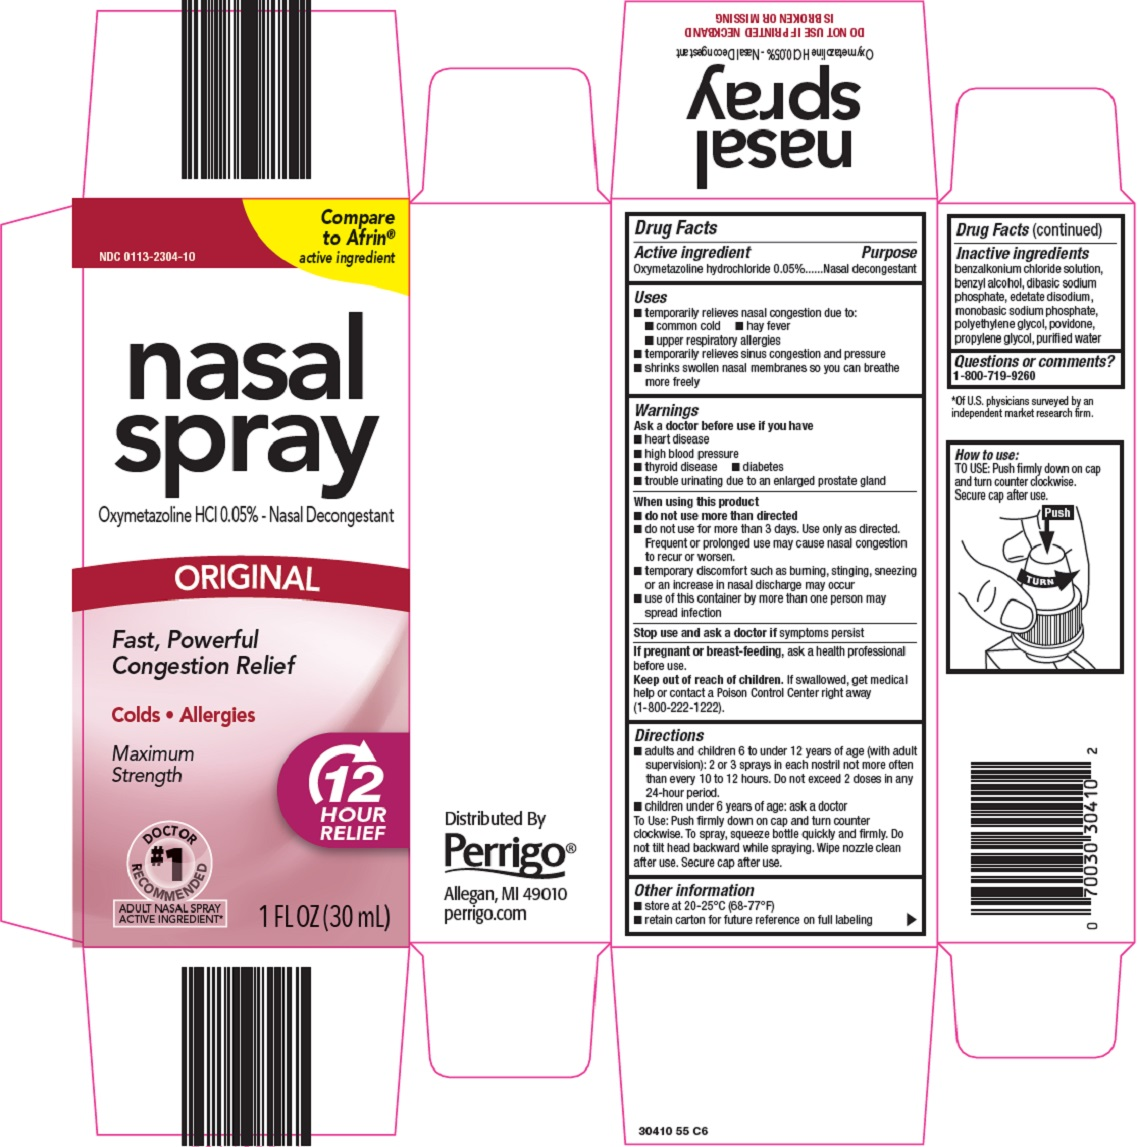 nasal-spray-image